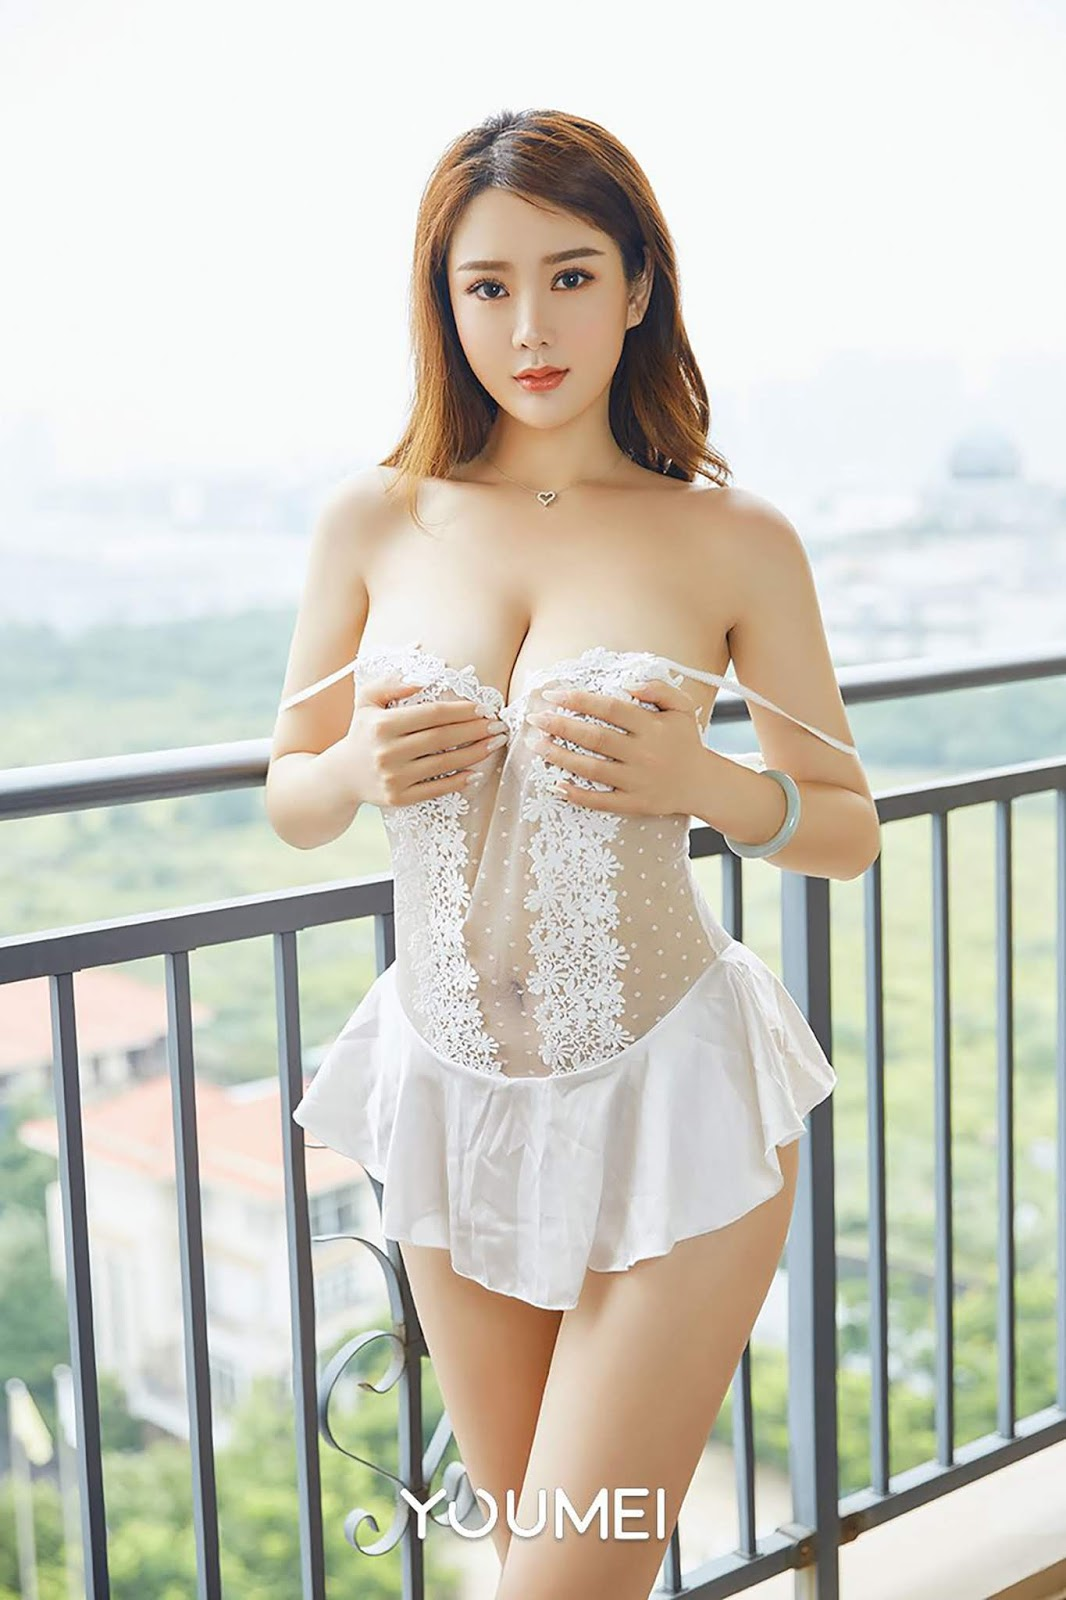 Chinese Big Boobs YiYang 易阳Silvia Youmei Vol 054 (28 Pict)